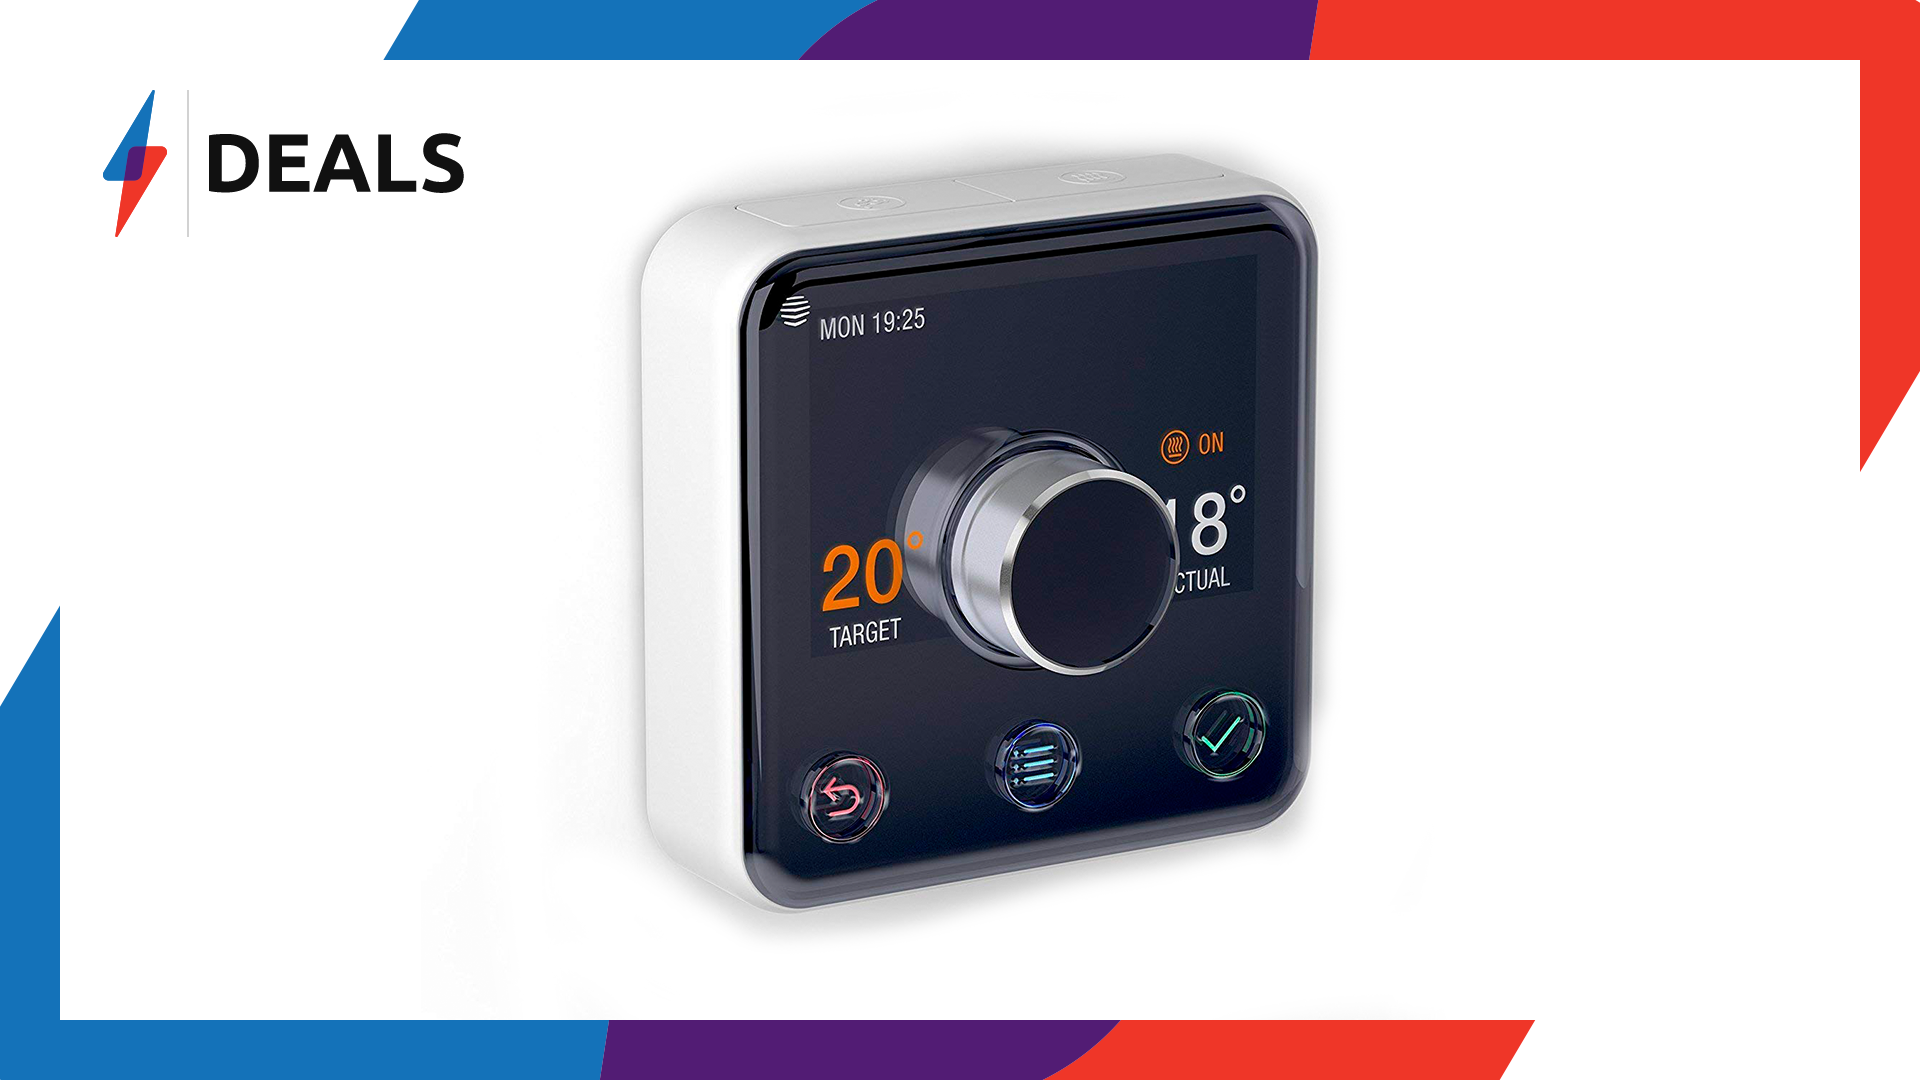 Having a Hive Active smart thermostat installed in your home has never been cheaper